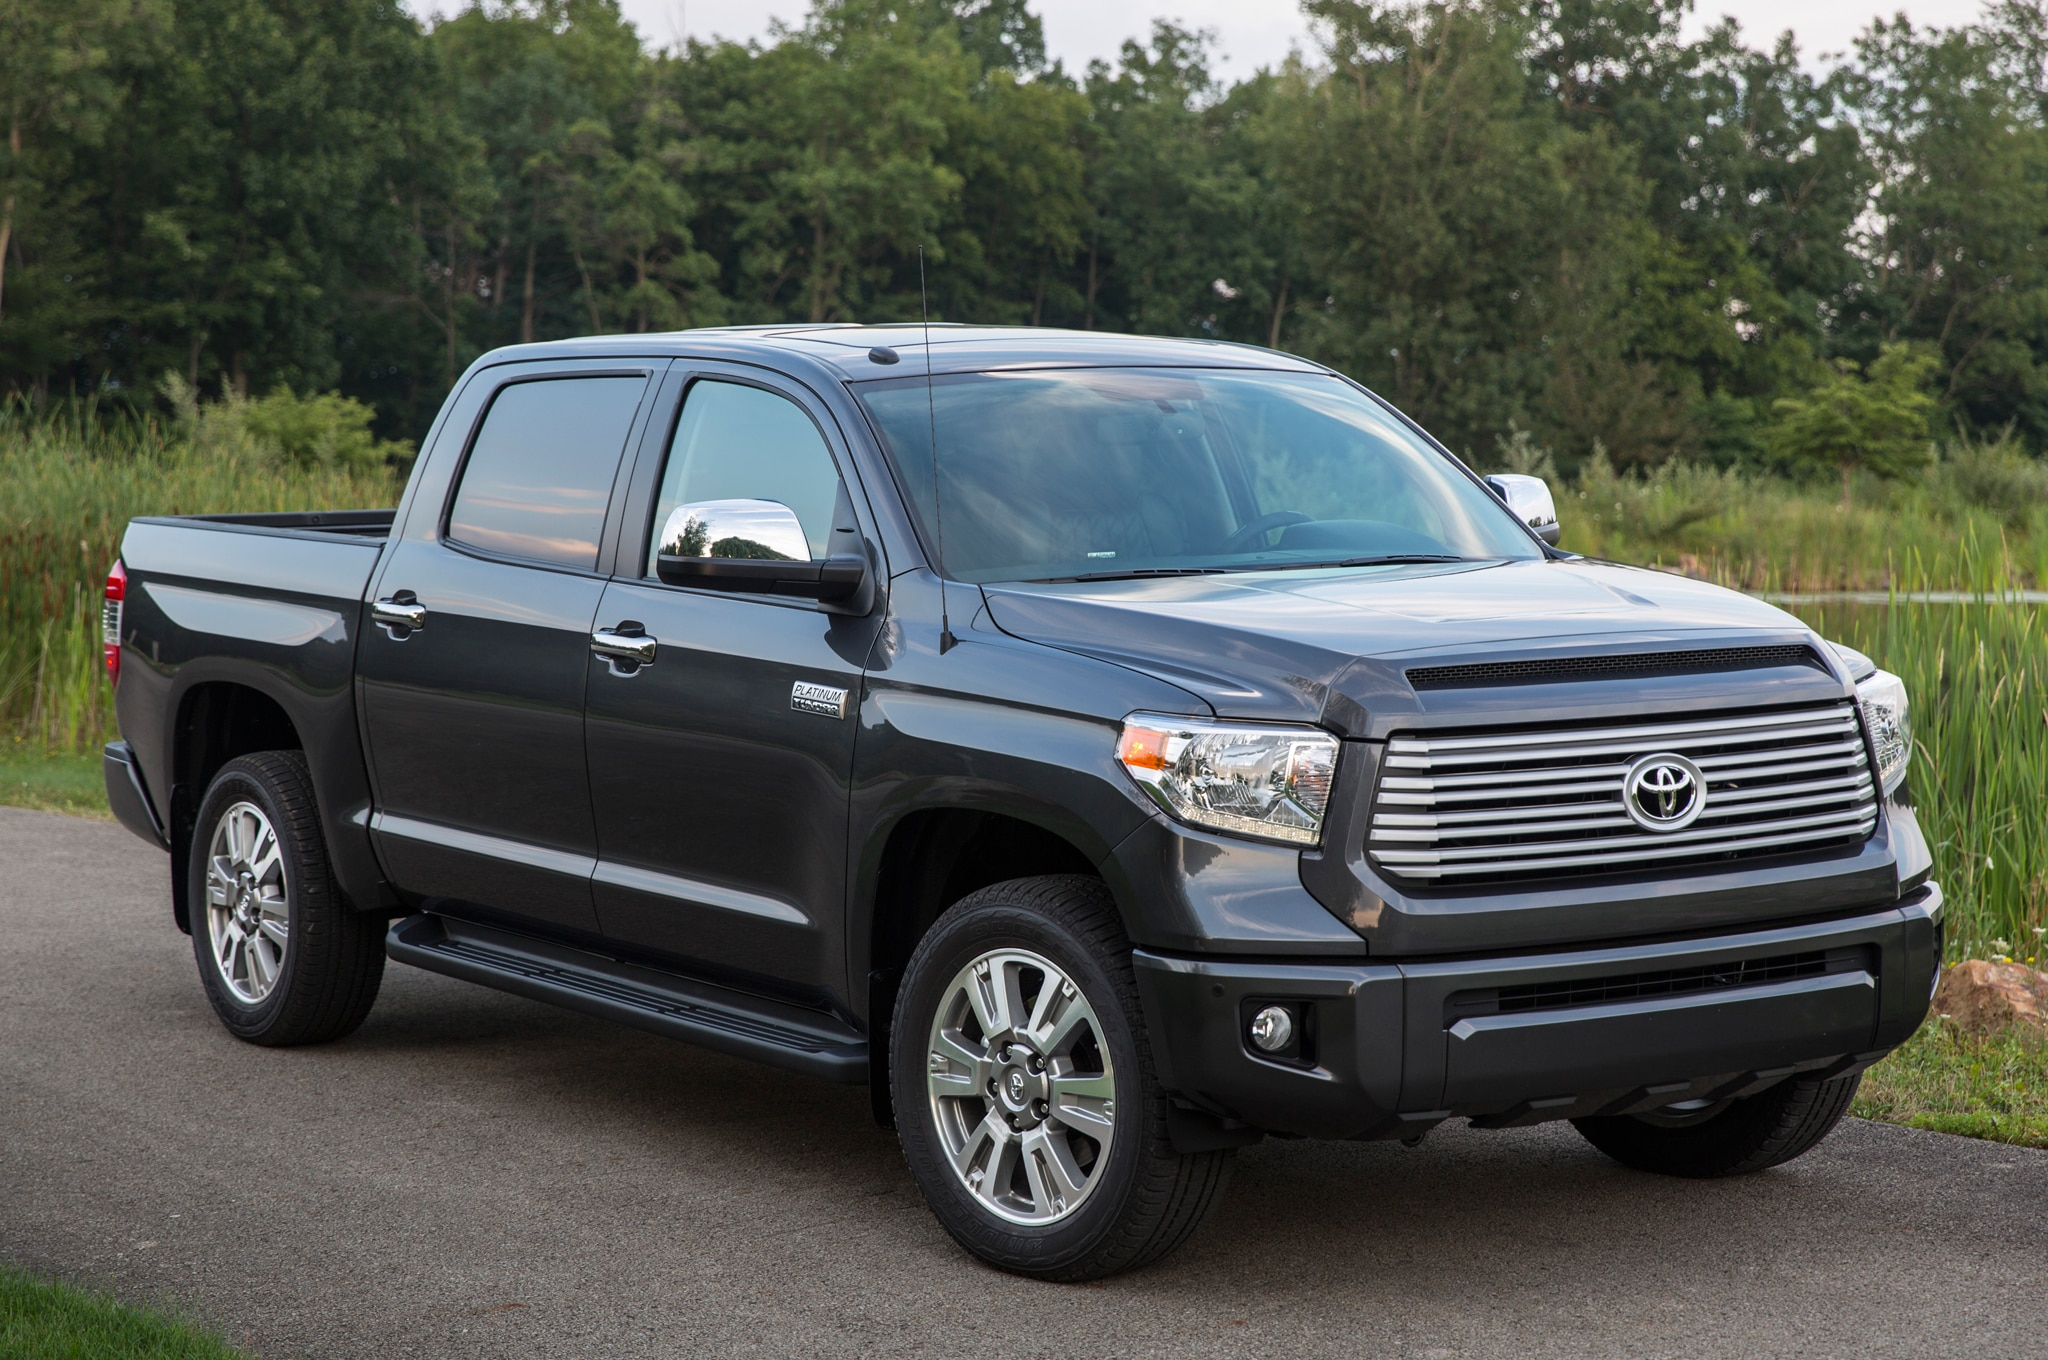 2014 toyota tundra first drive automobile magazine. Black Bedroom Furniture Sets. Home Design Ideas